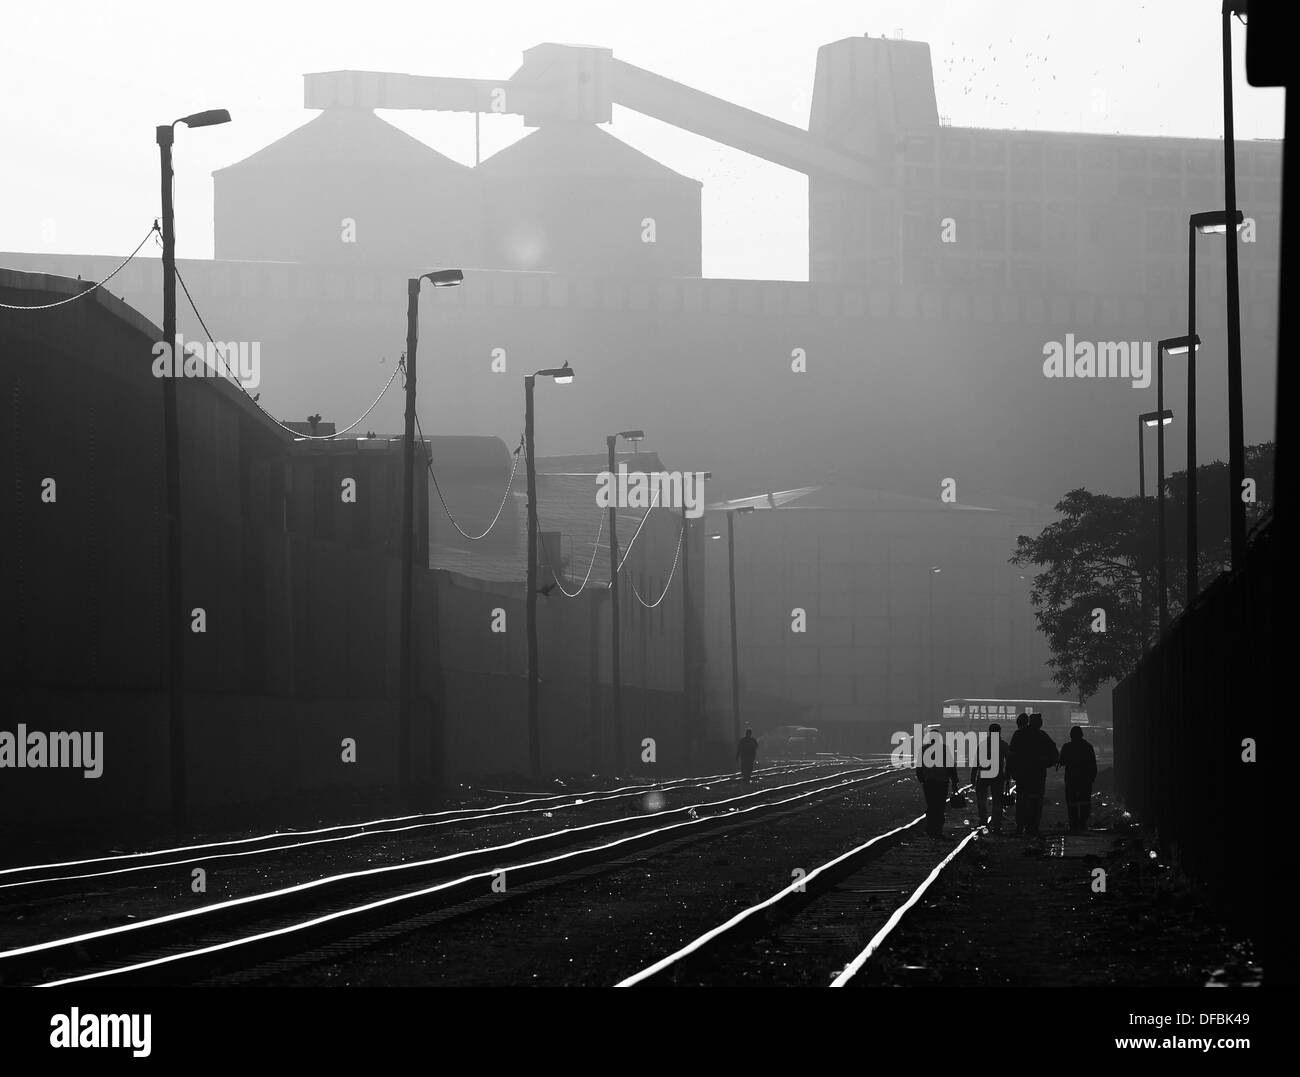 Workers walk on the railway tracks at the Durban harbour, July 15, 2010. © Rogan Ward 2010 - Stock Image